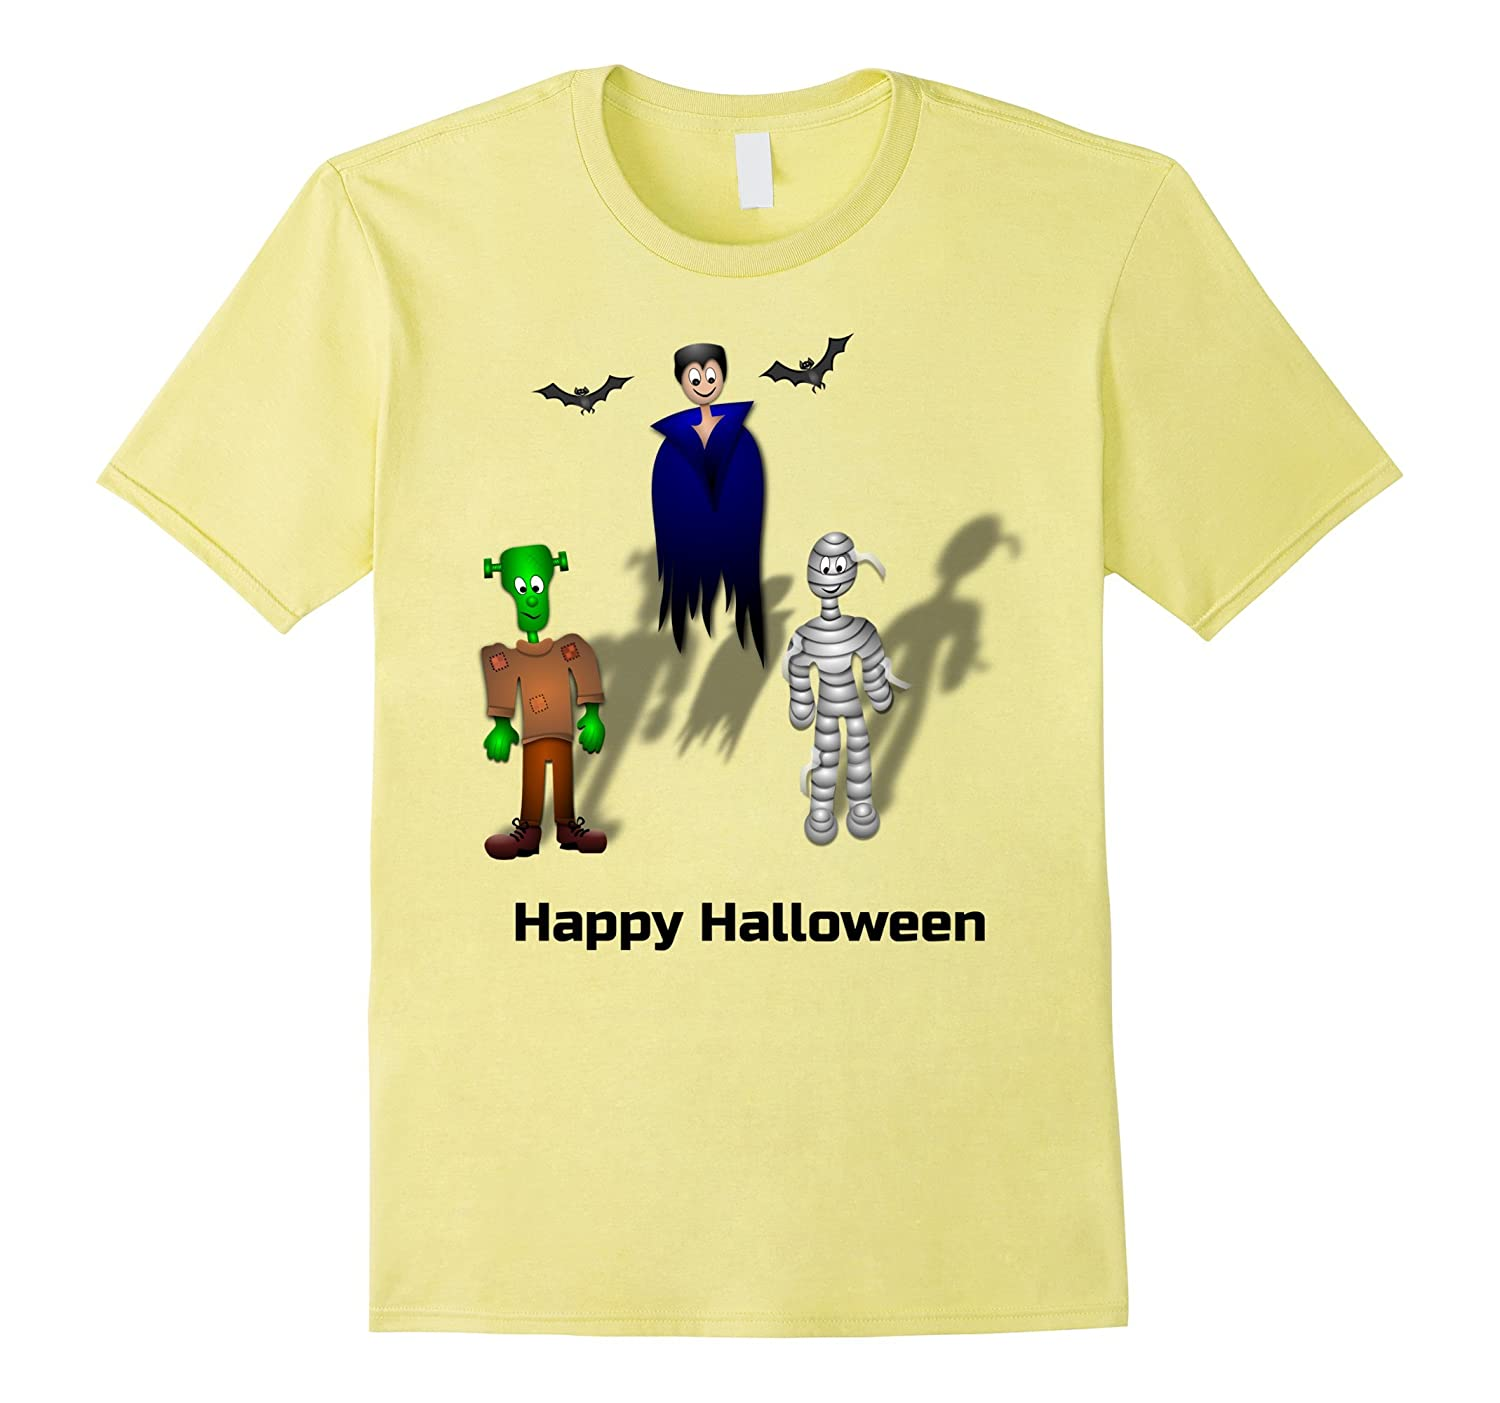 Happy Halloween T-shirt with Bats and Monsters-Rose